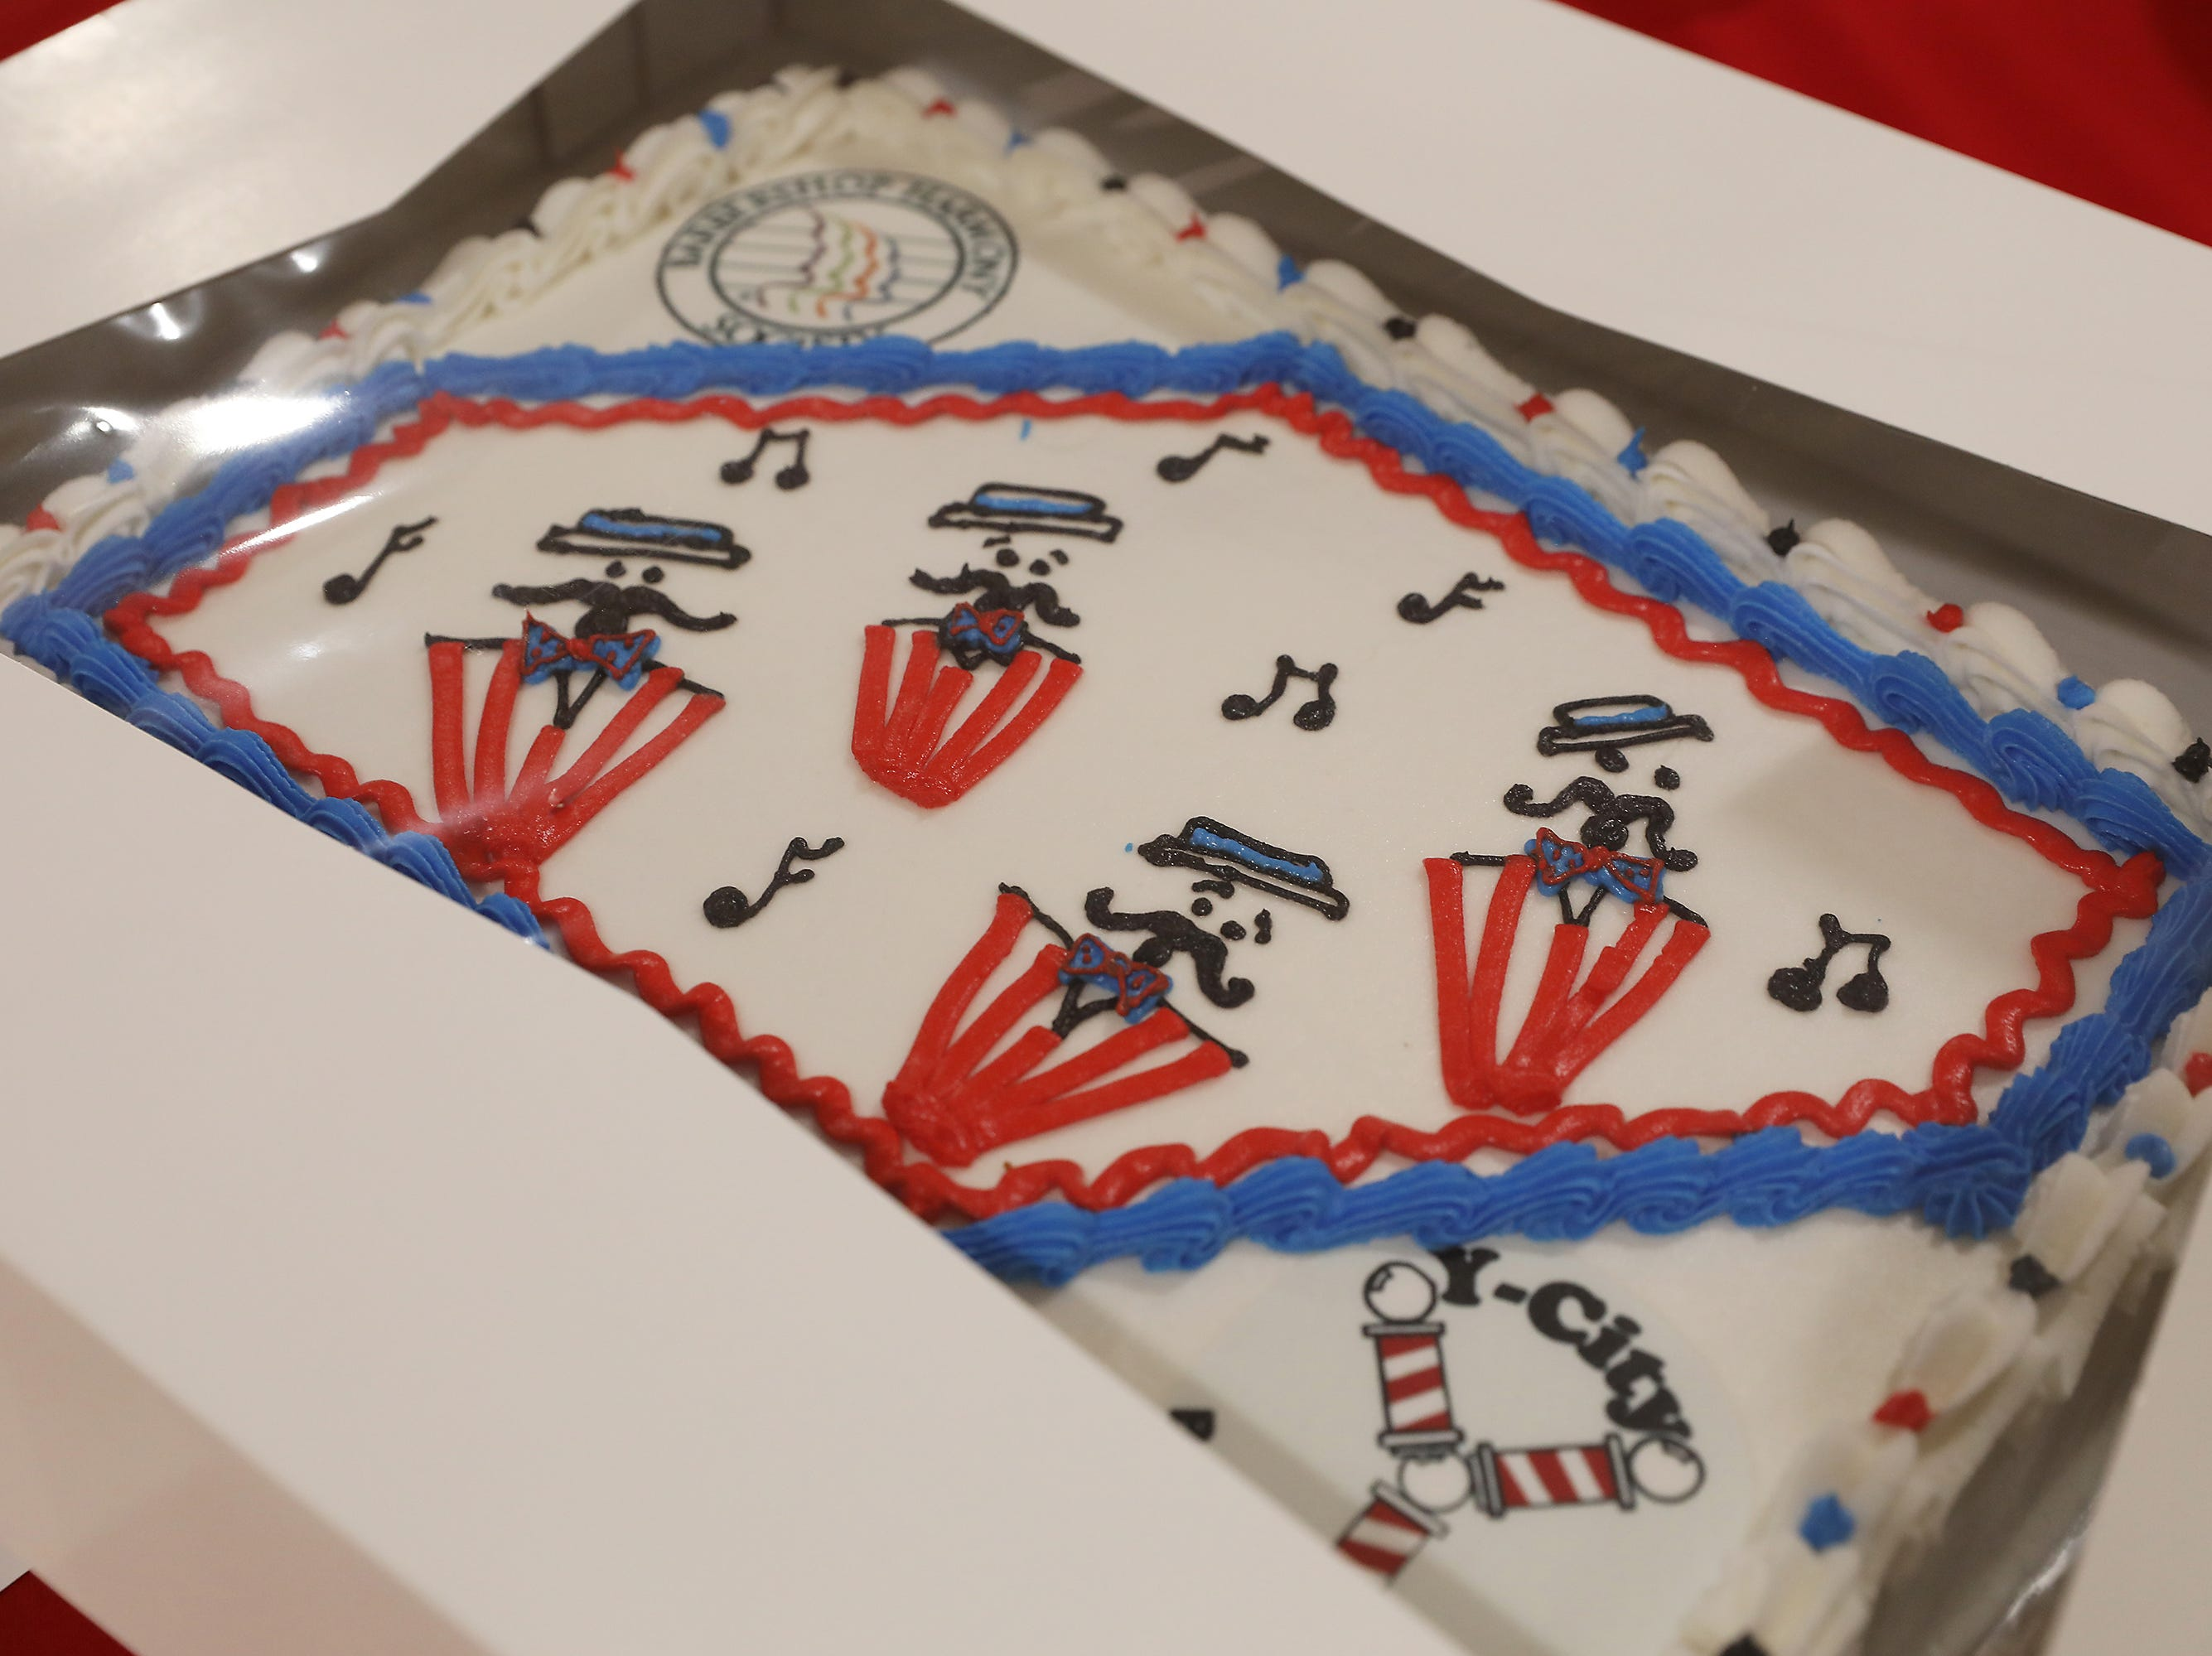 11:30 A.M. Friday cake 287 Y-City Barbershop Chorus/The Barbershop Harmony Society - 4 tickets to annual show in September; $60